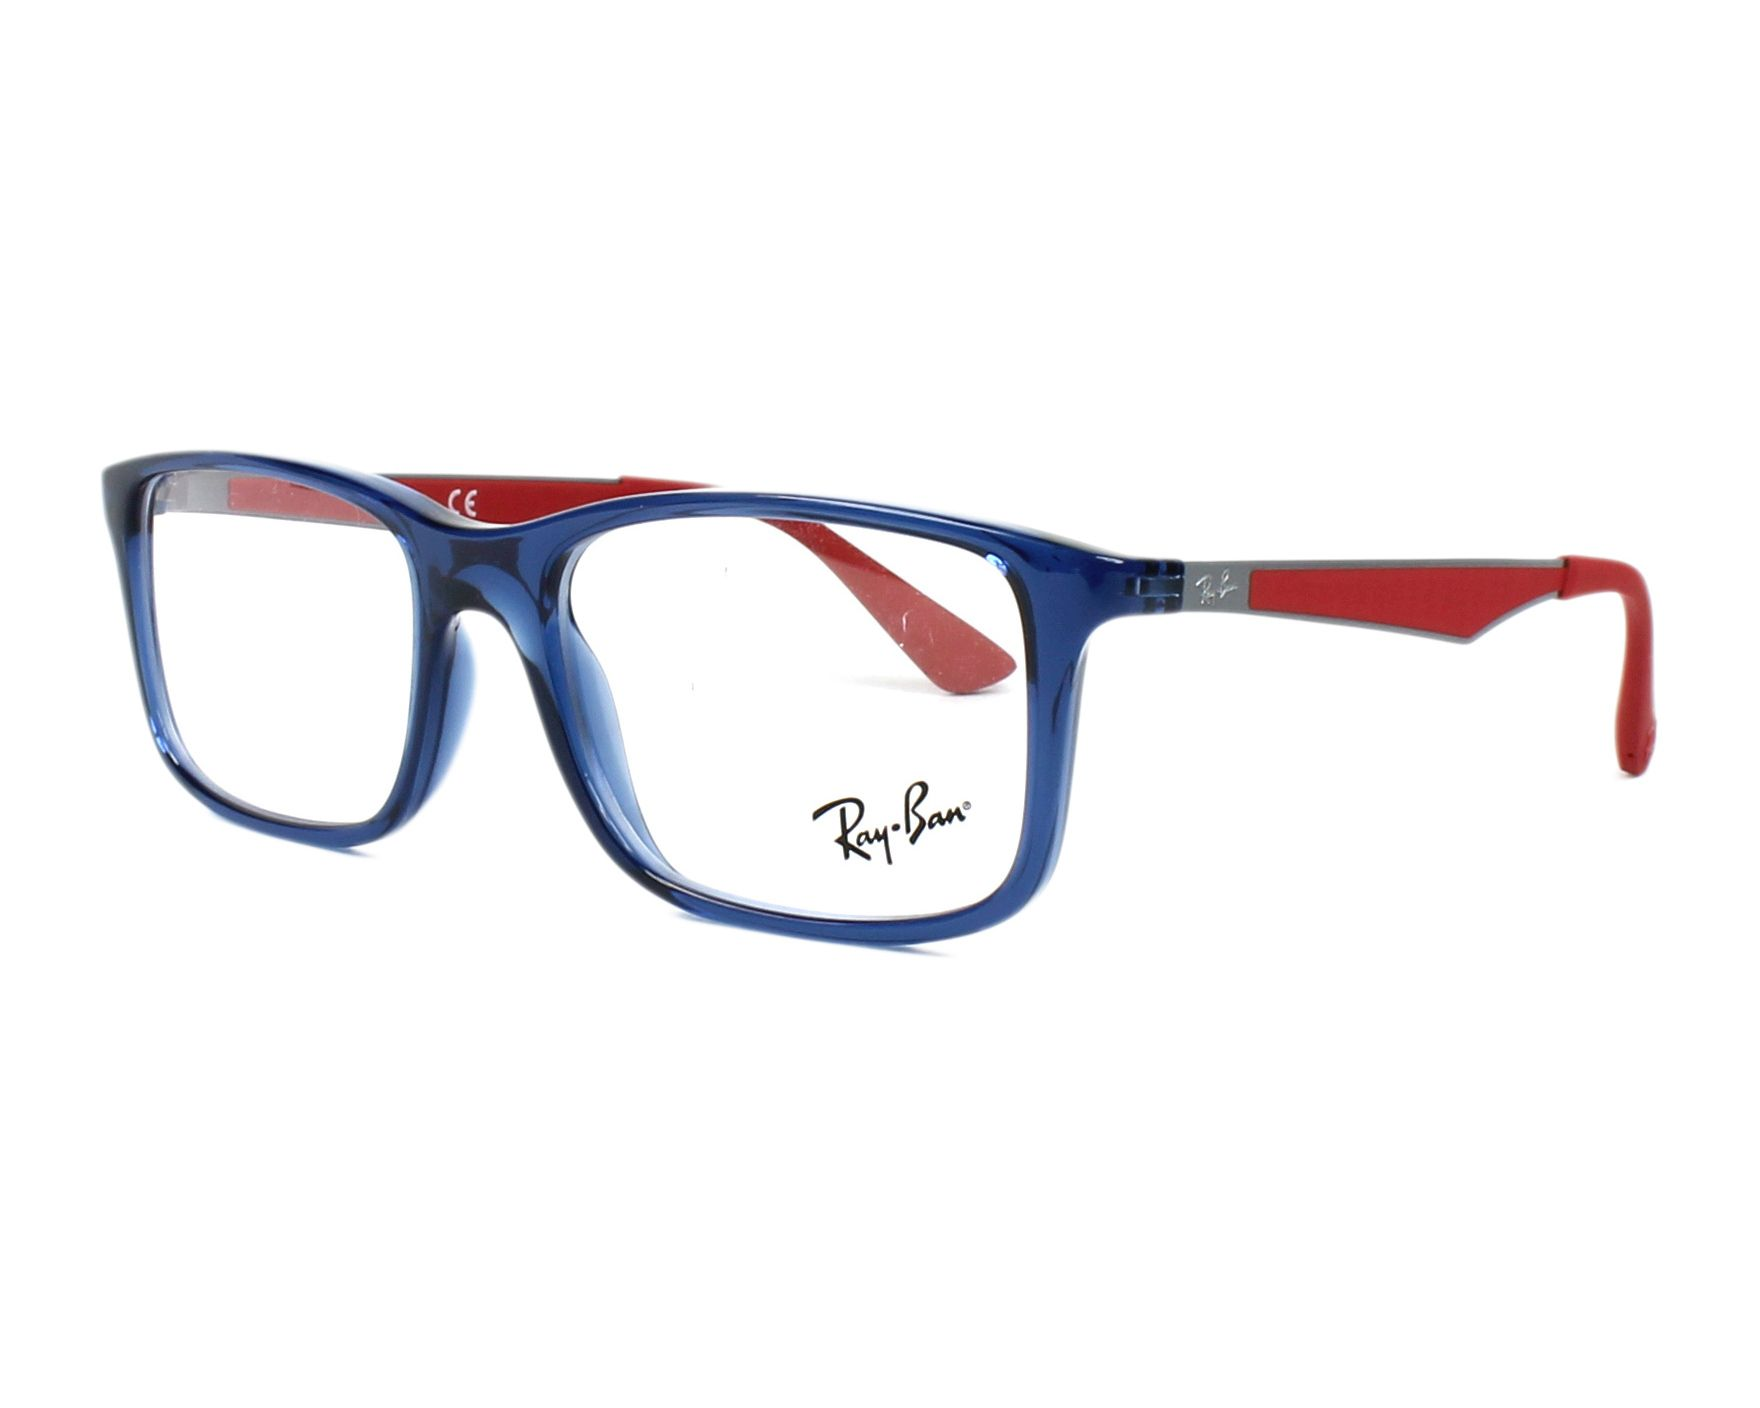 eyeglasses Ray-Ban RY-1570 3721 - Blue Red profile view 2d2ff1f5ed58